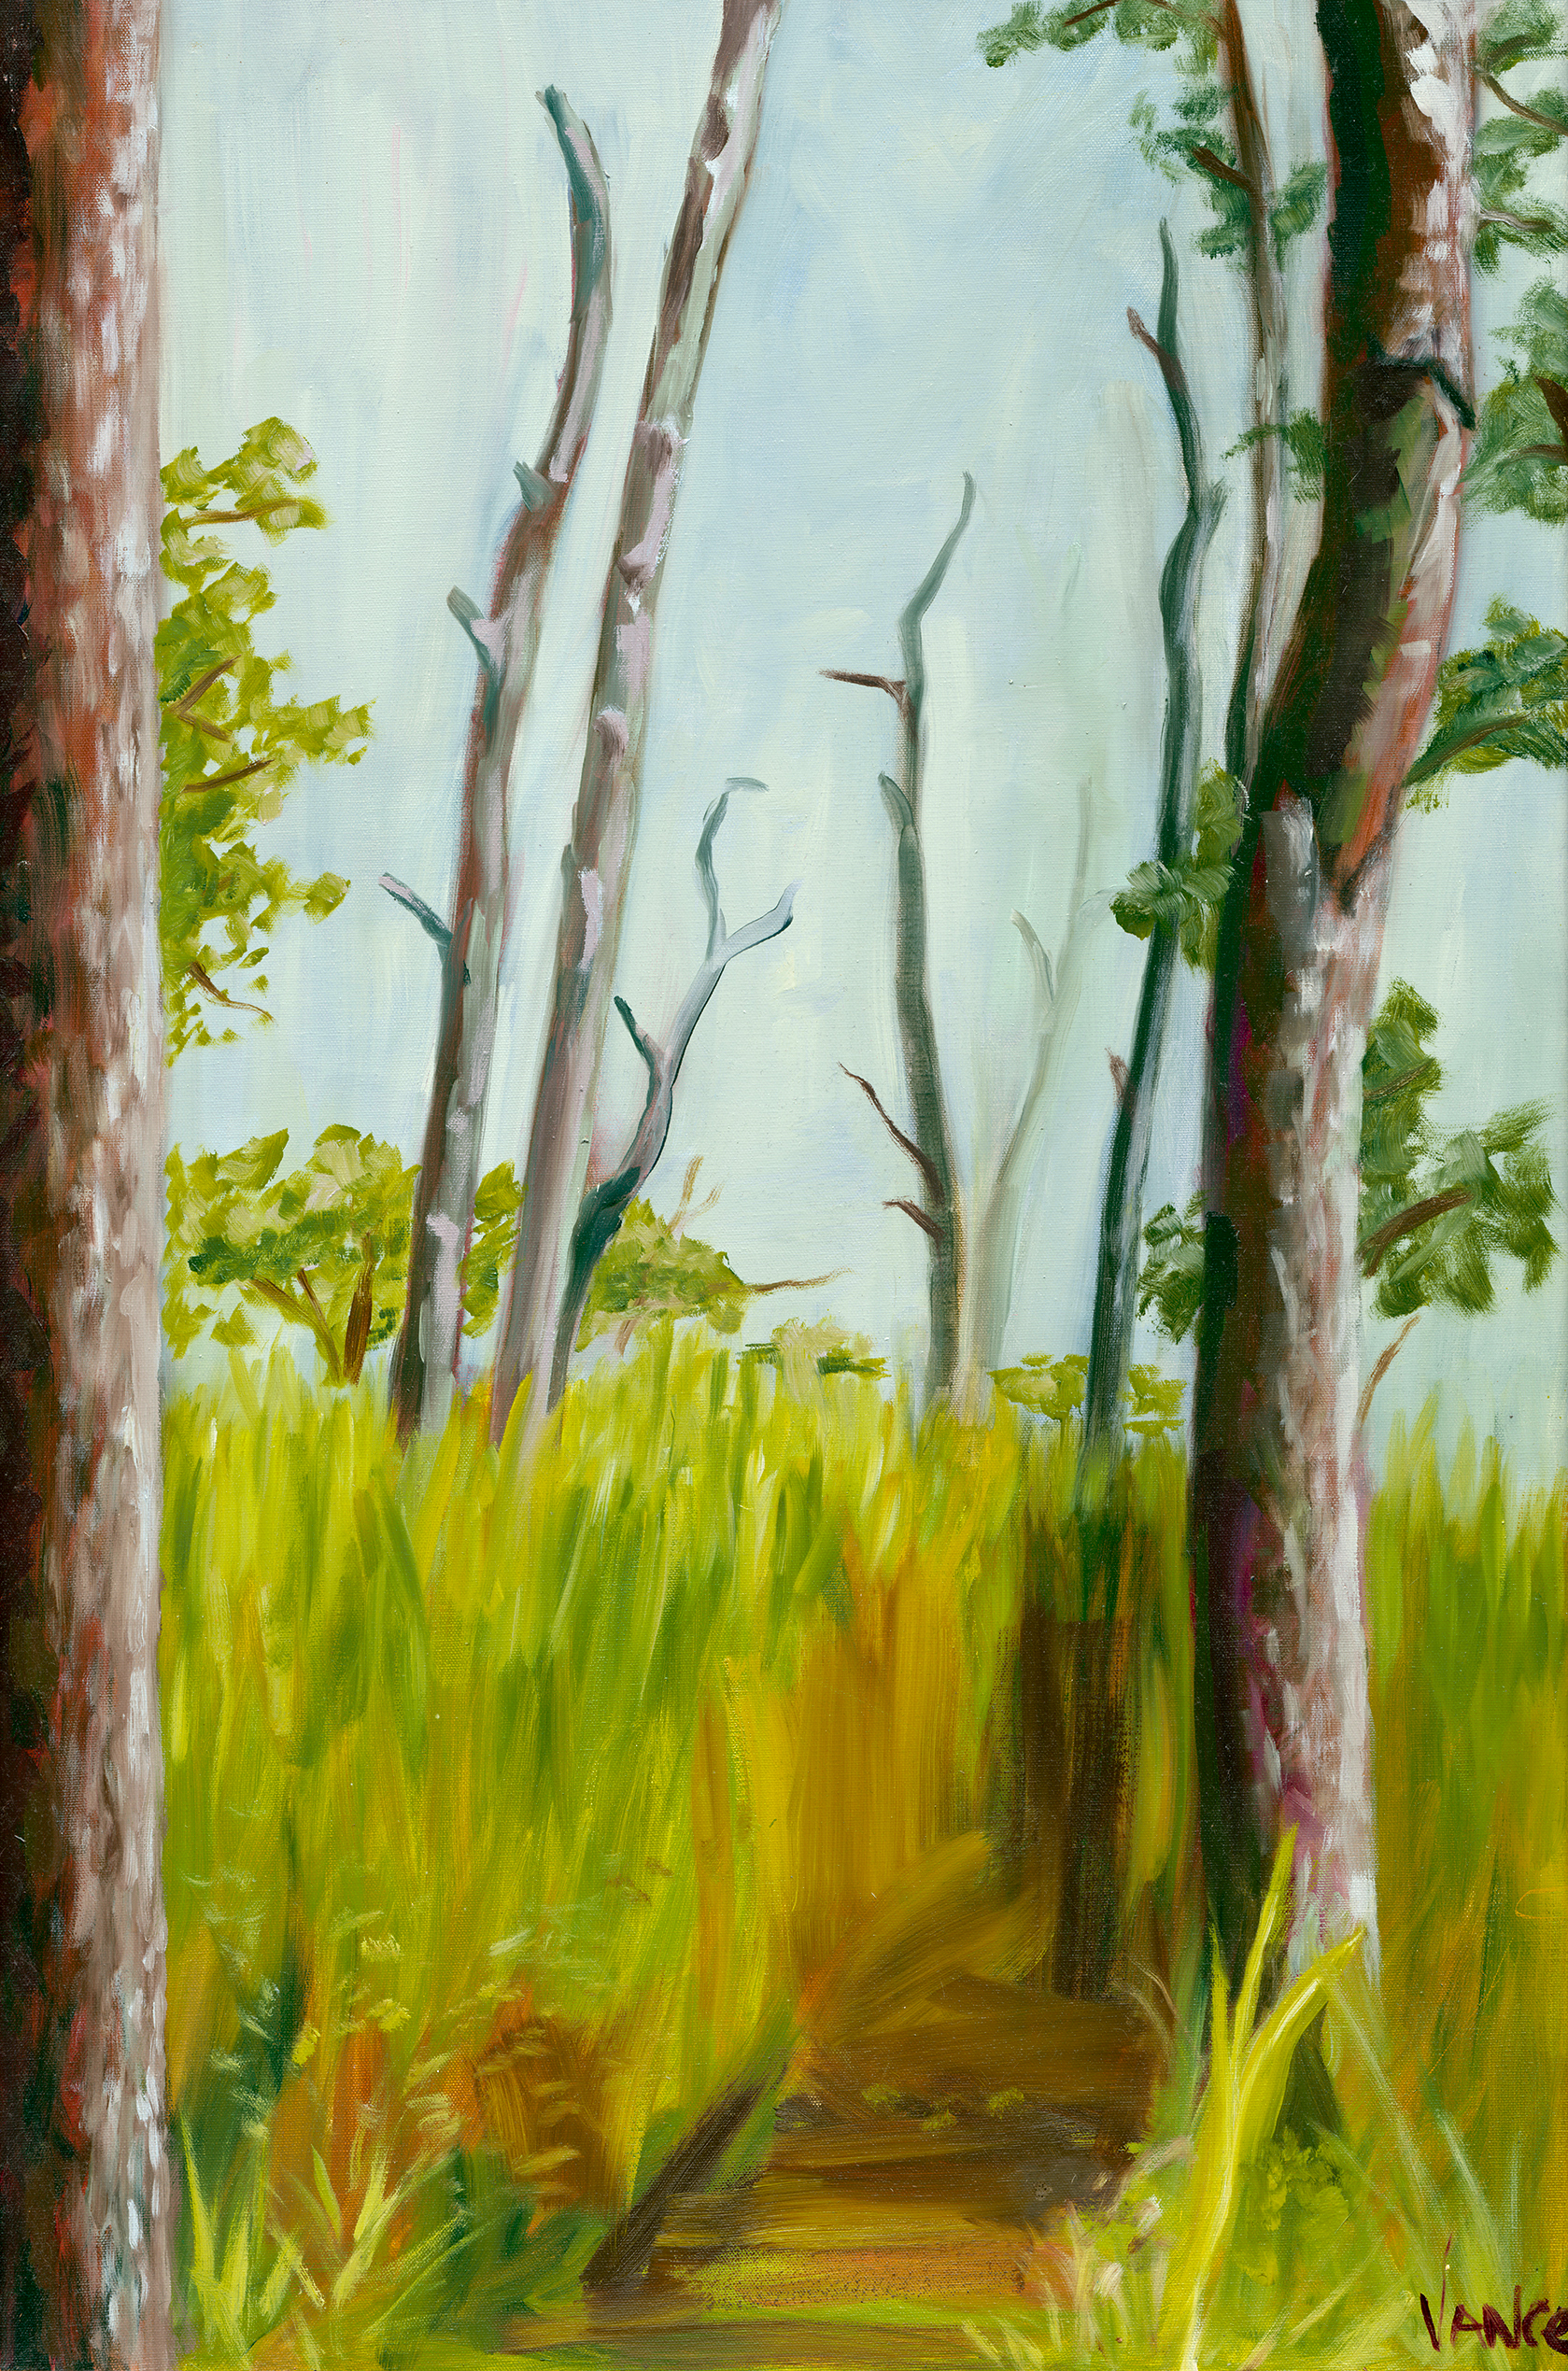 Opv art into the woods low res jpg file vx8nzq